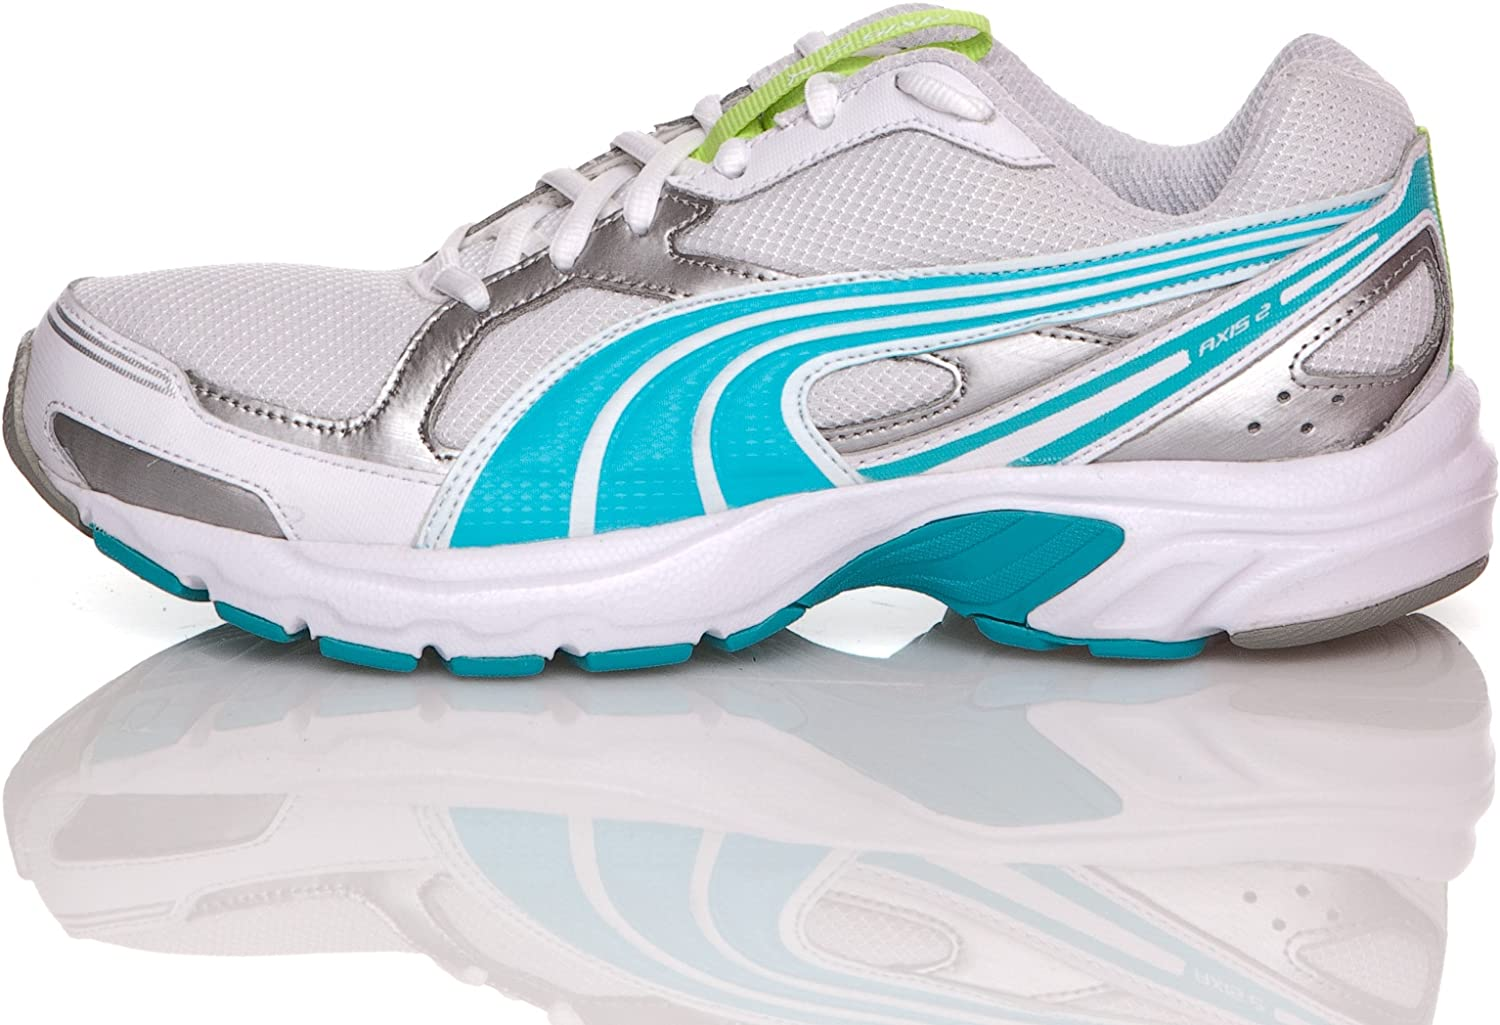 PUMA Axis 2 Womens Running Sneakers